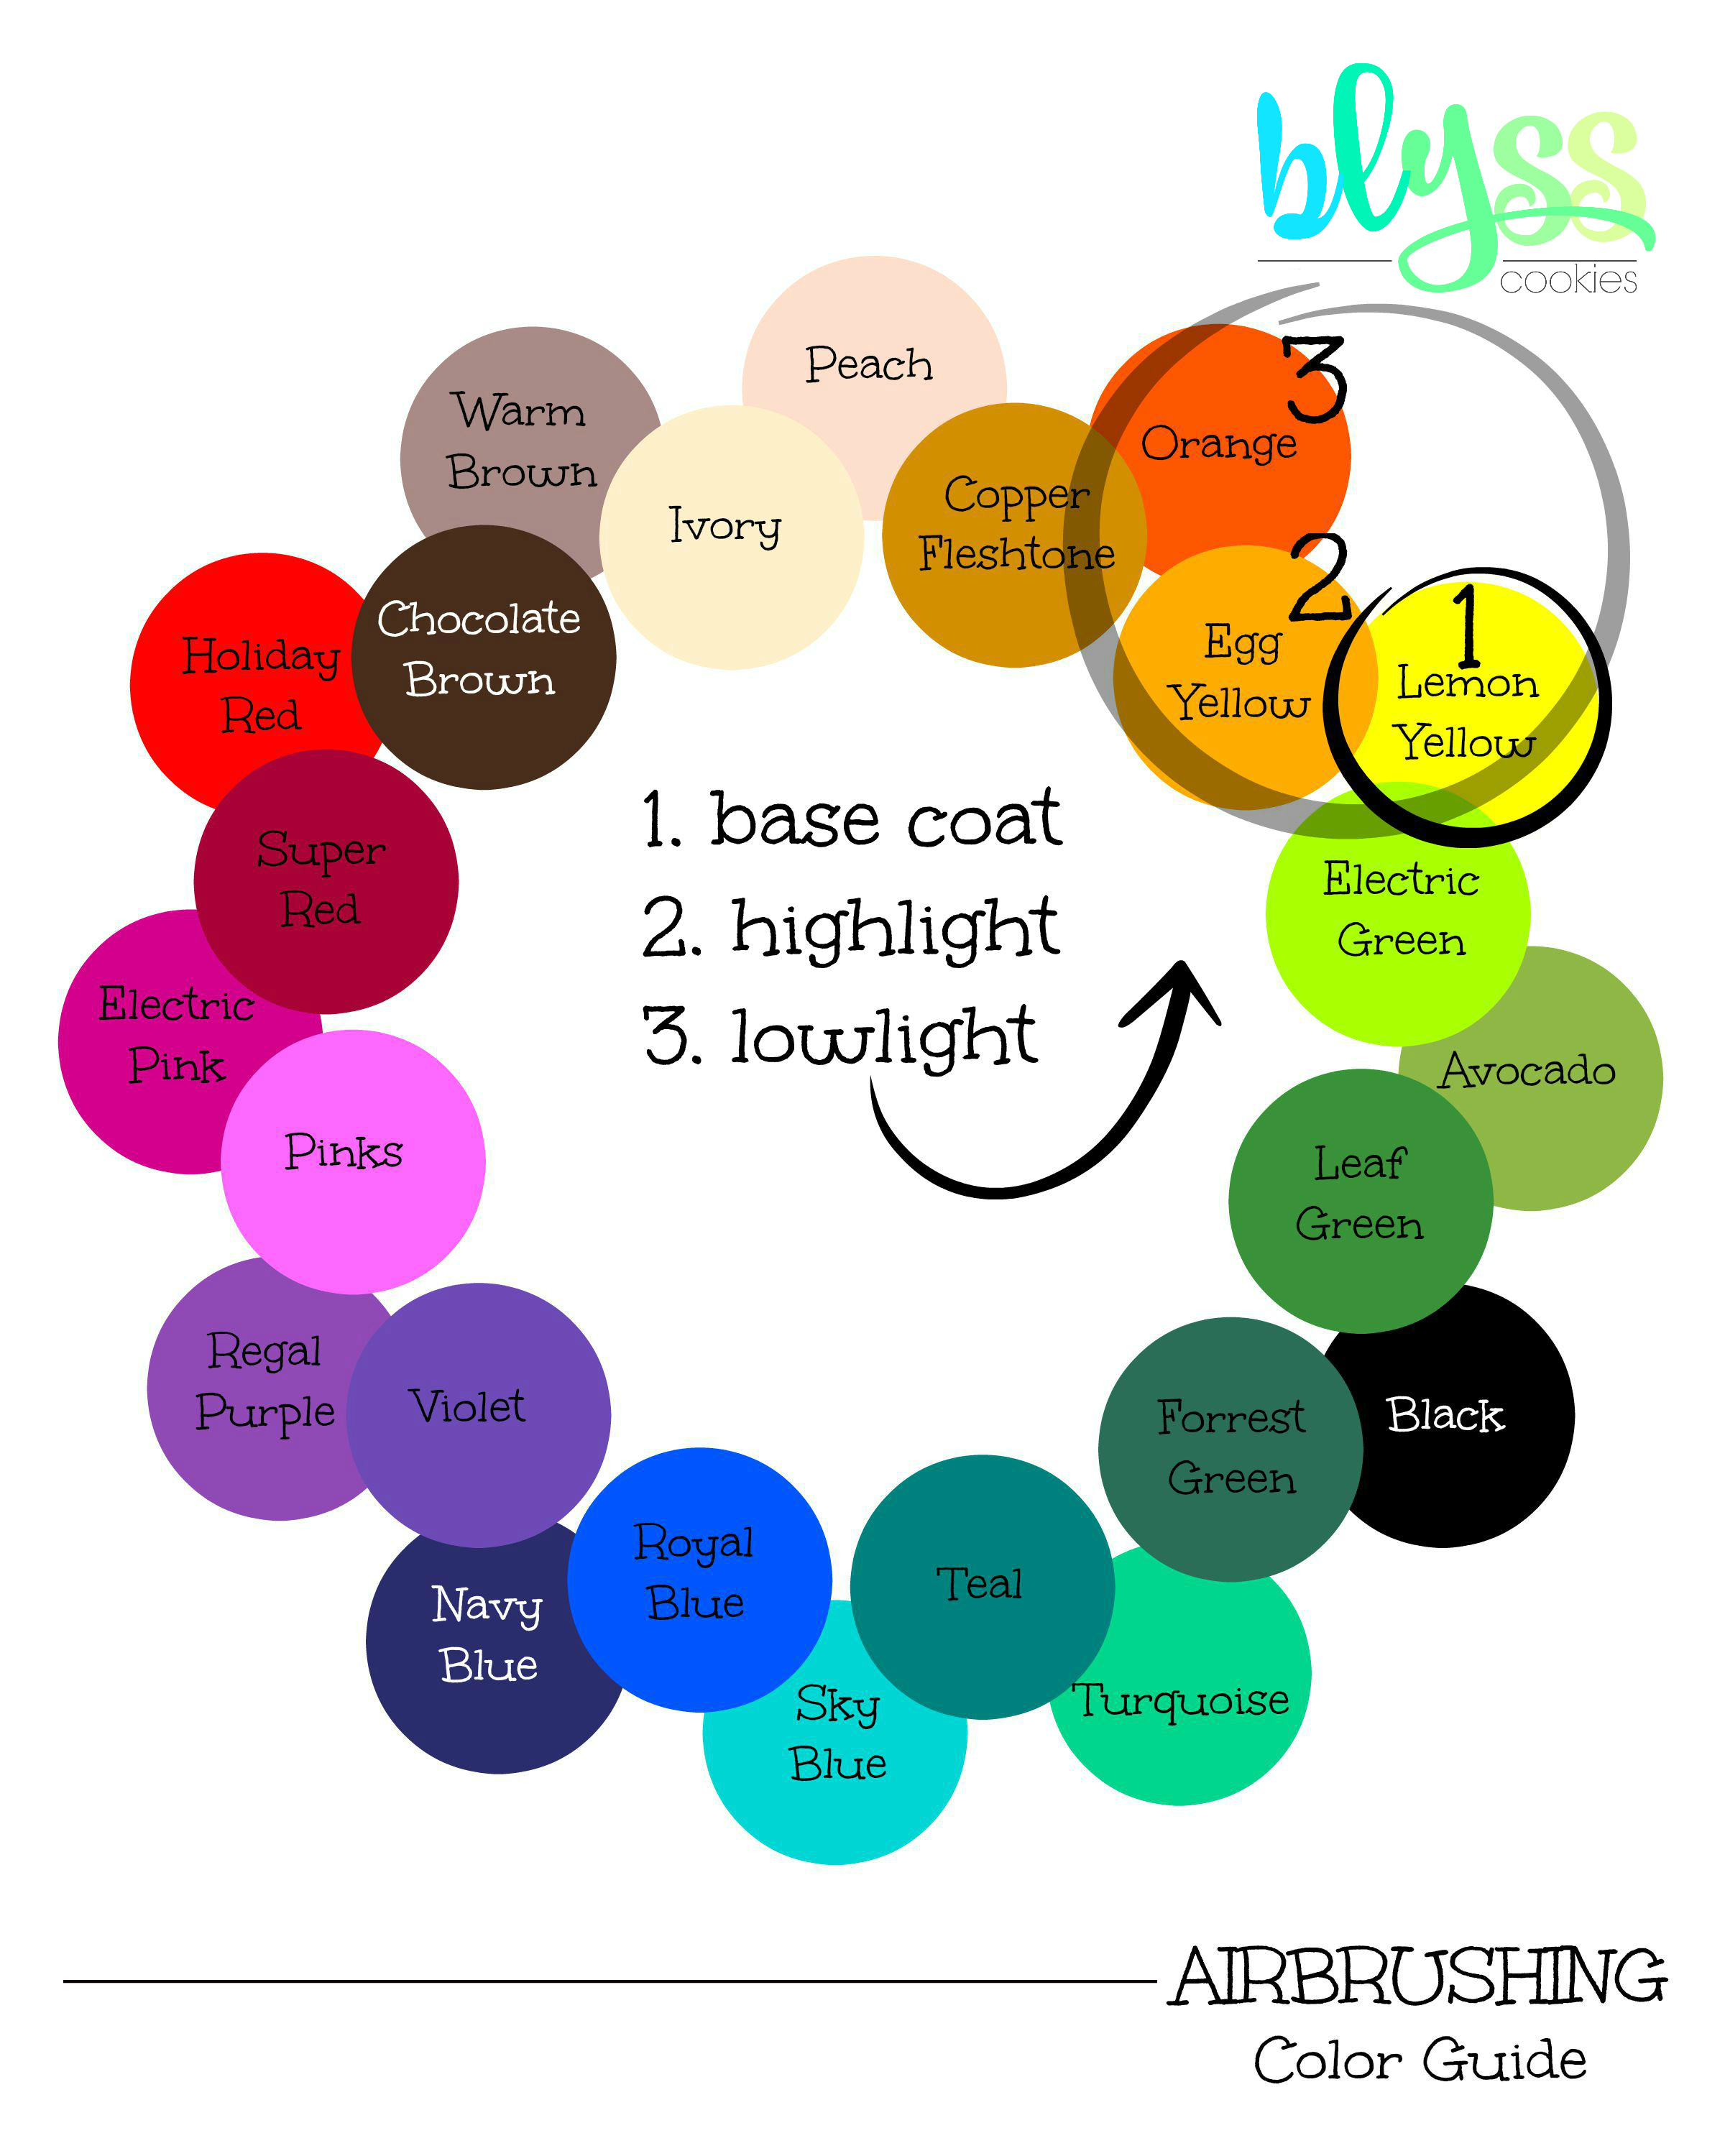 Airbrushing Color Guide4.jpg